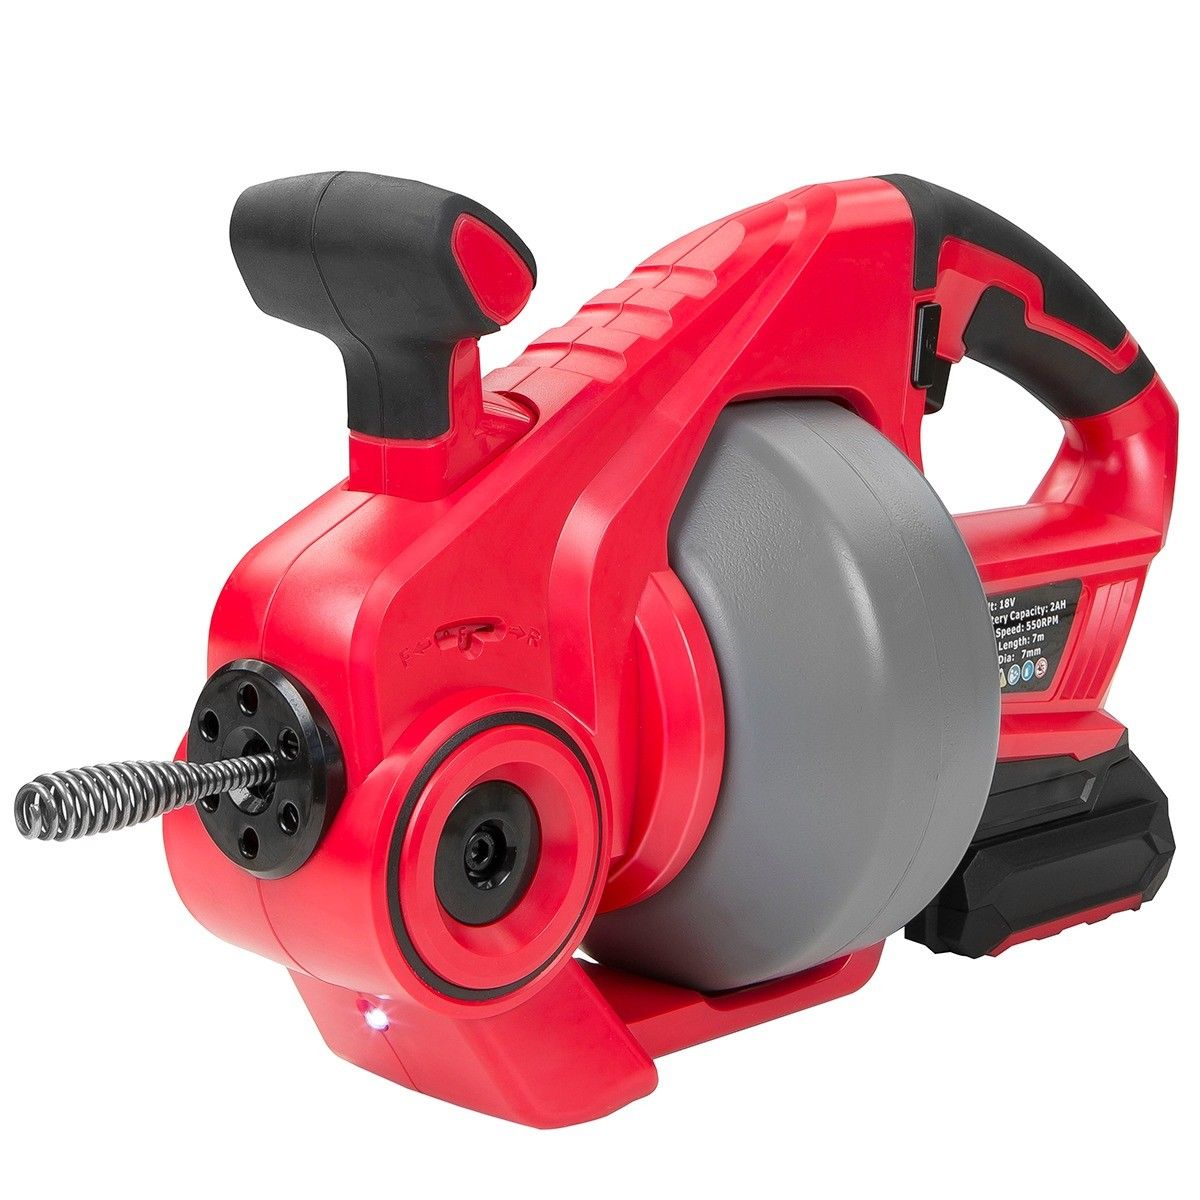 STKUSA 25ft Cordless Portable Electric Plumbing Dredger Cleaner Drain Snake Auger Drill Cleaner Plumbing Remover Tool